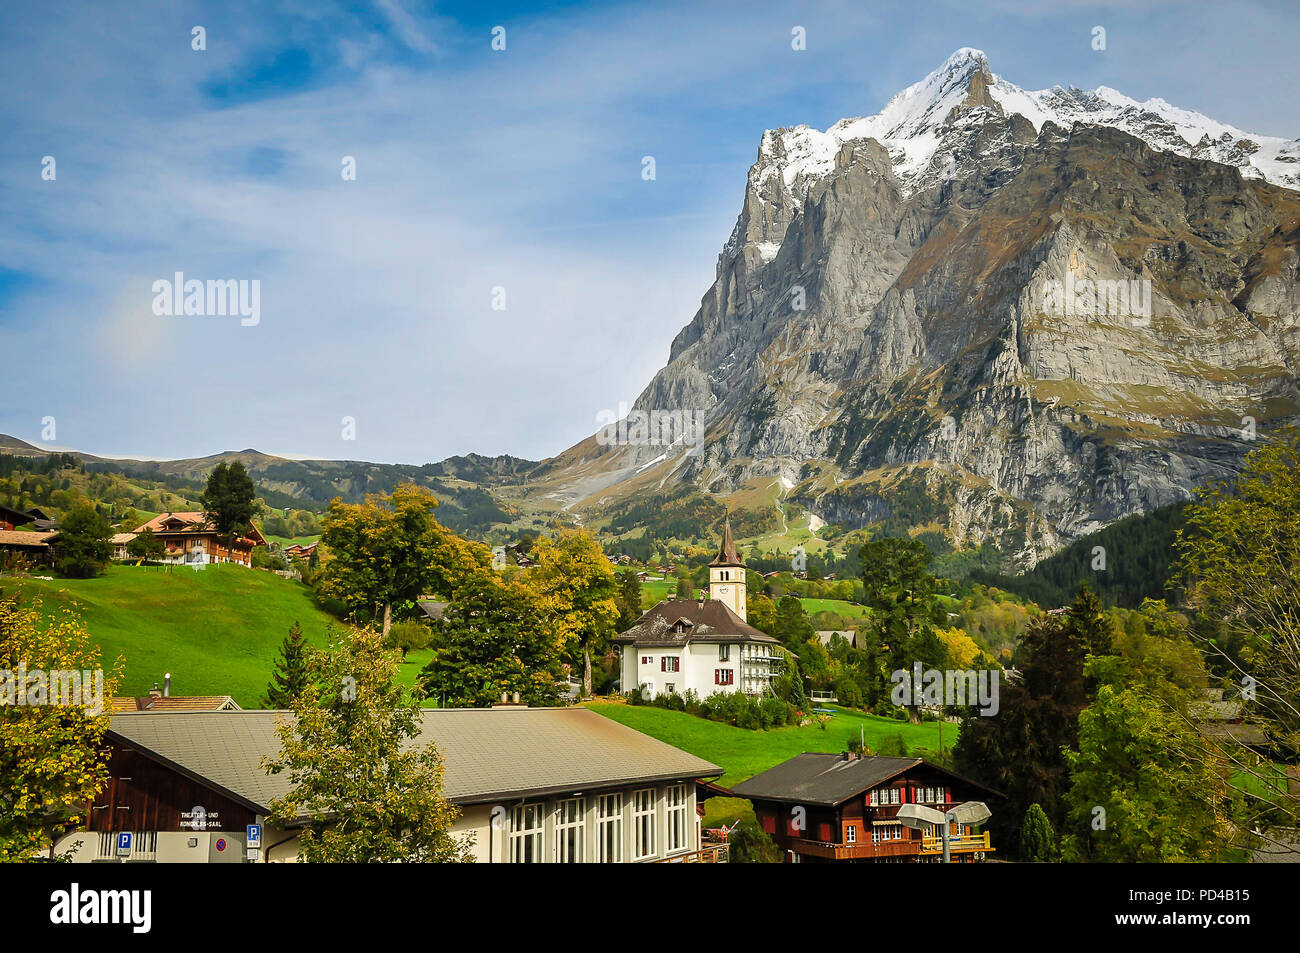 The Eiger as seen from Grindelwald - Stock Image